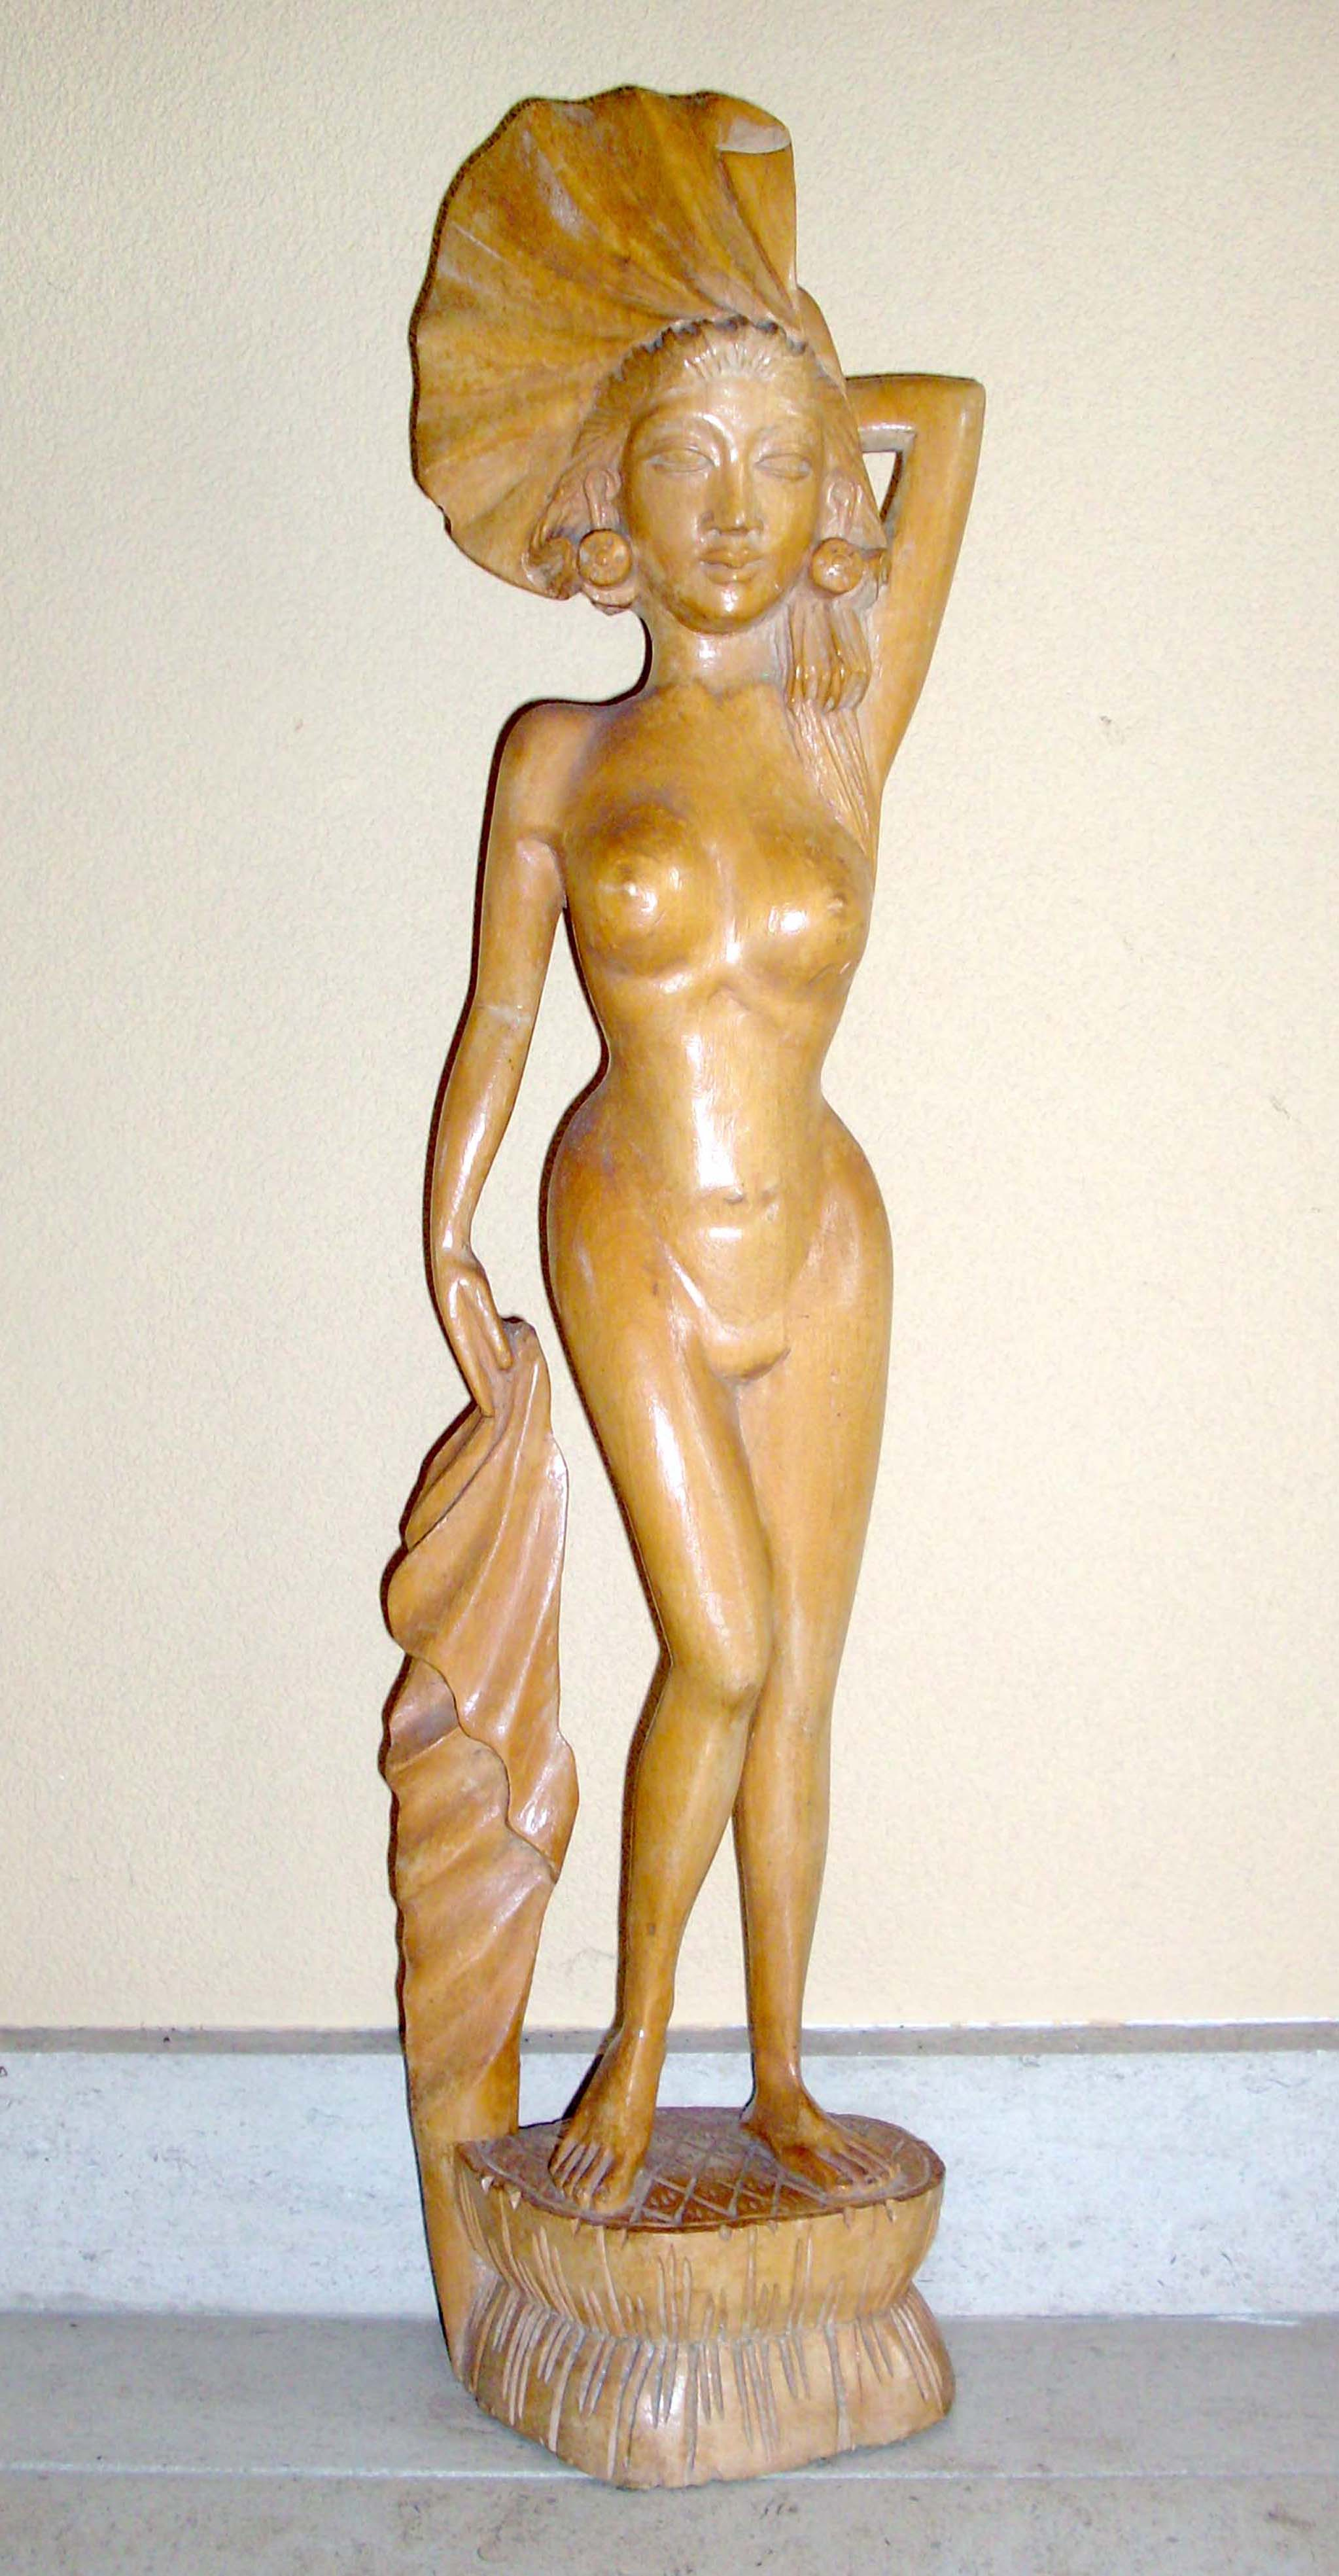 Dancing Nude Lady Sculpture